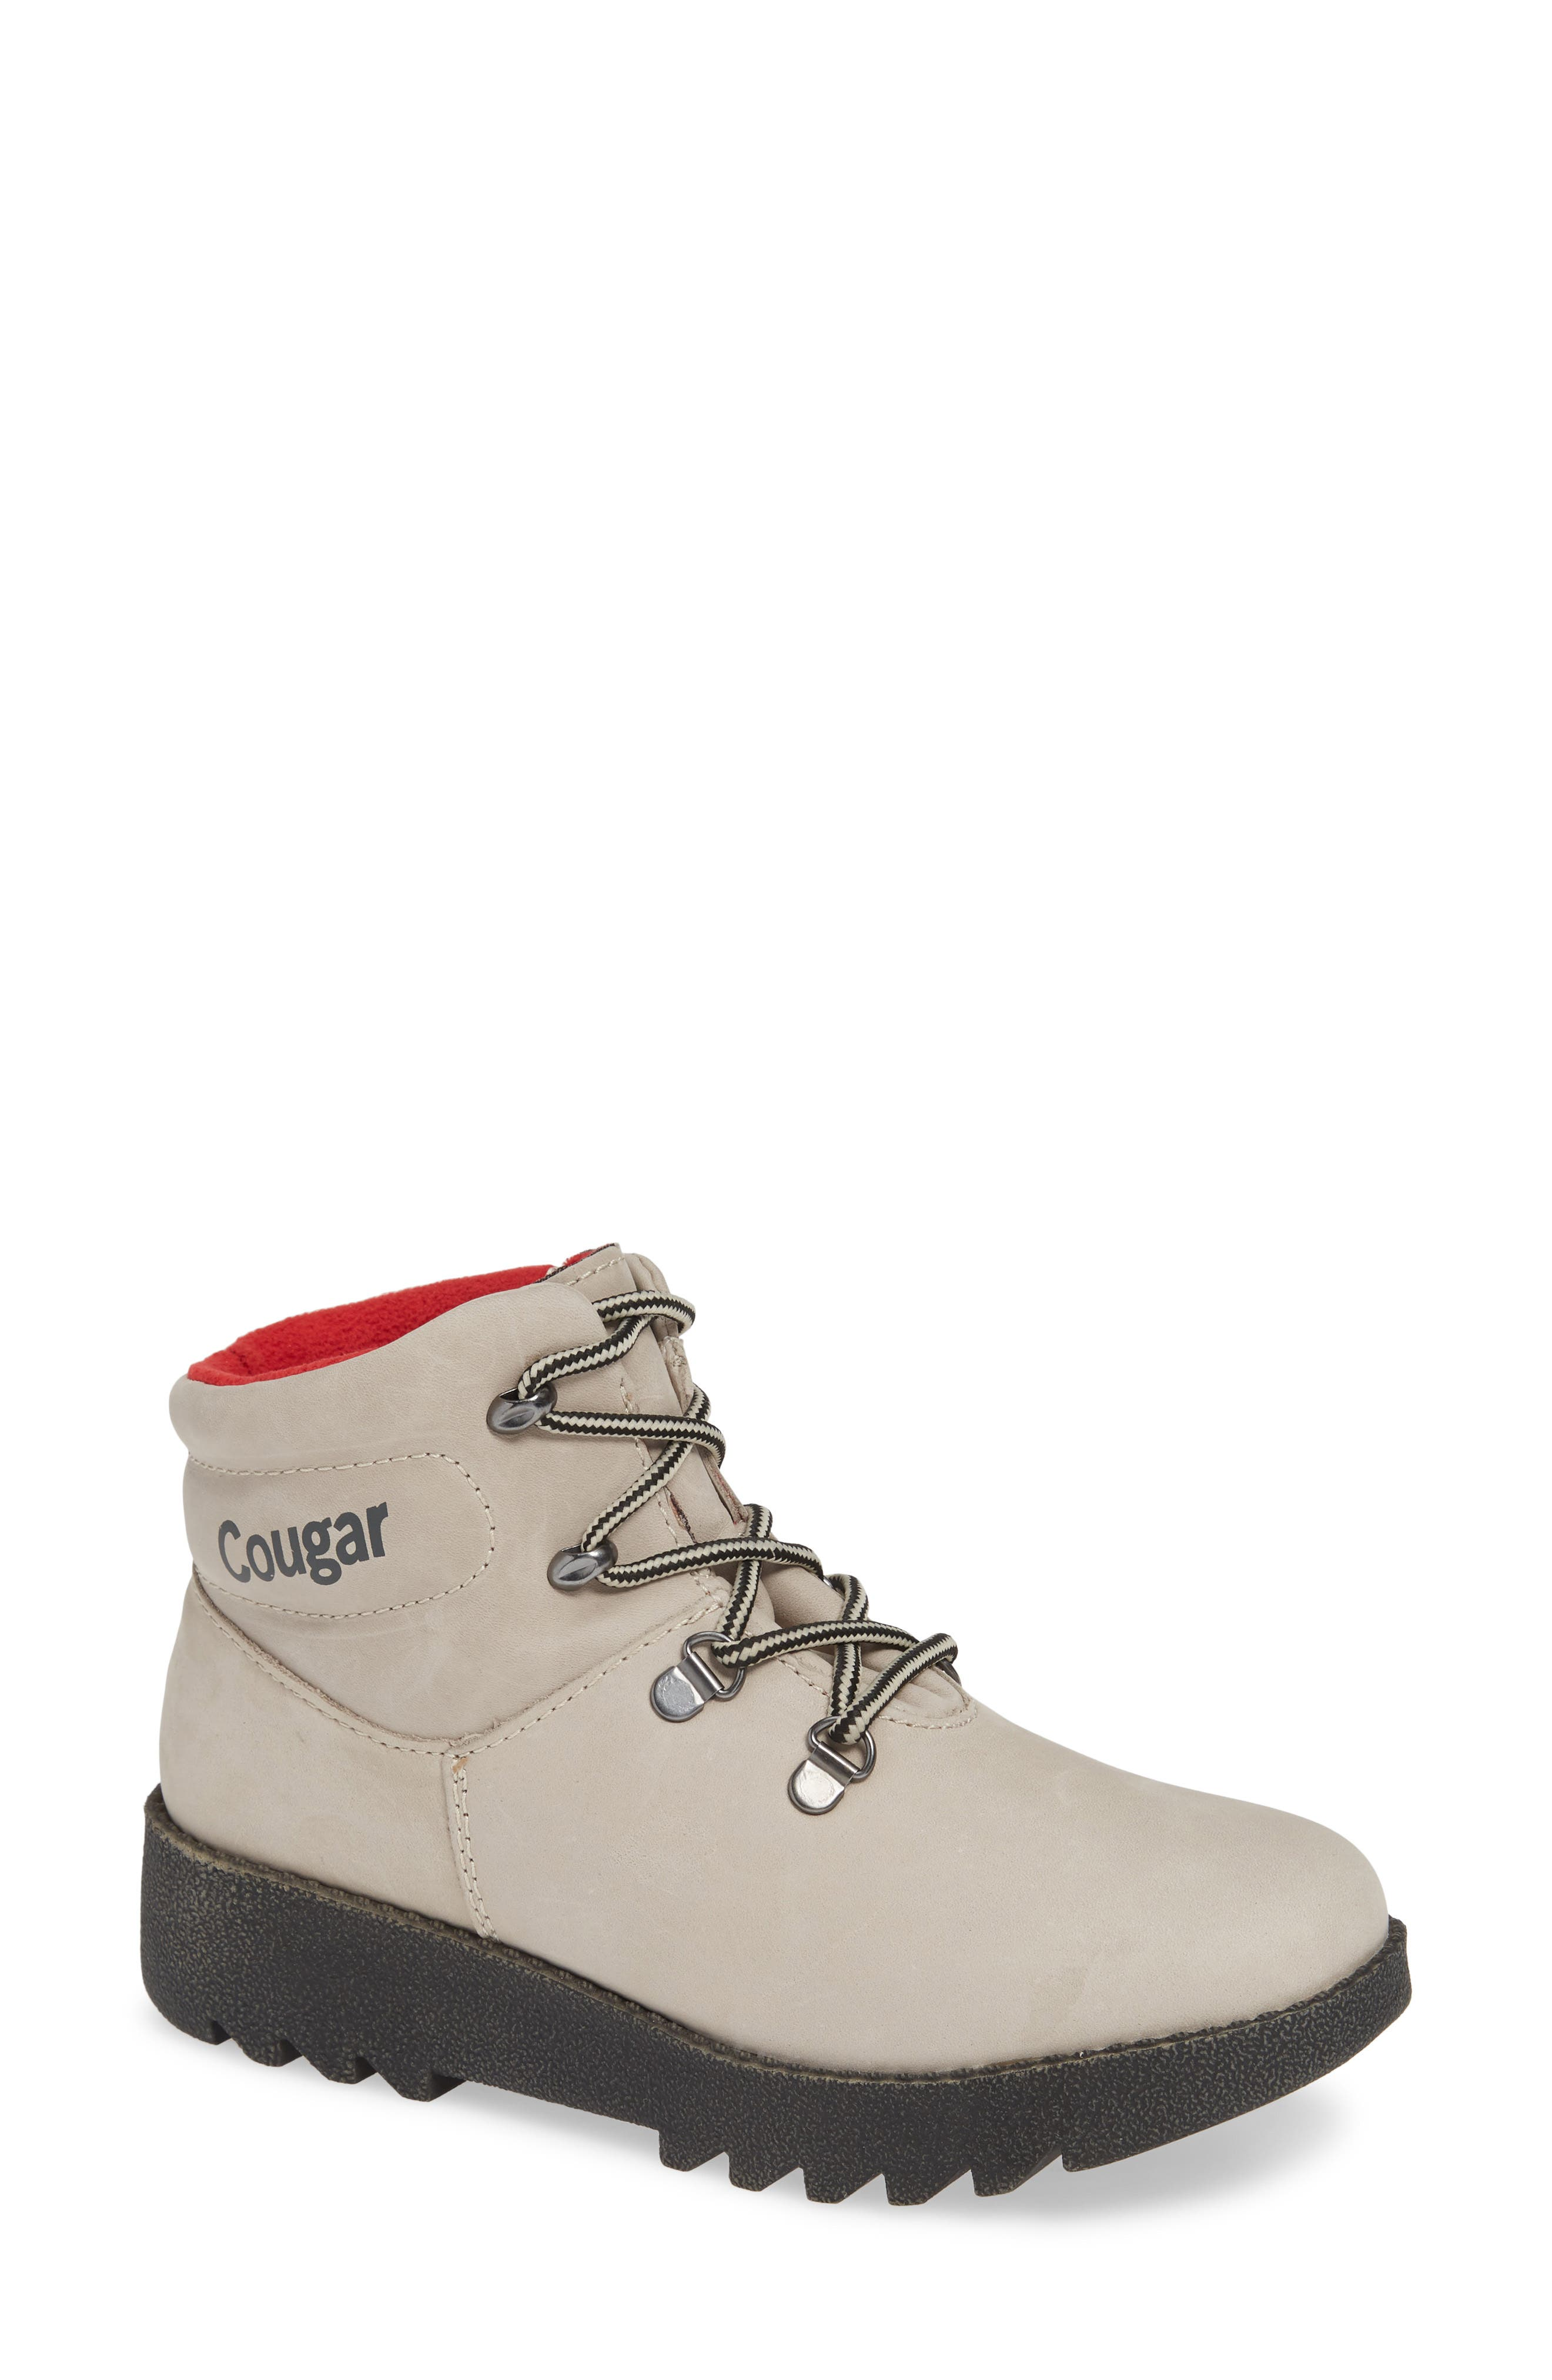 Cougar Paige Waterproof Insulated Bootie, Grey